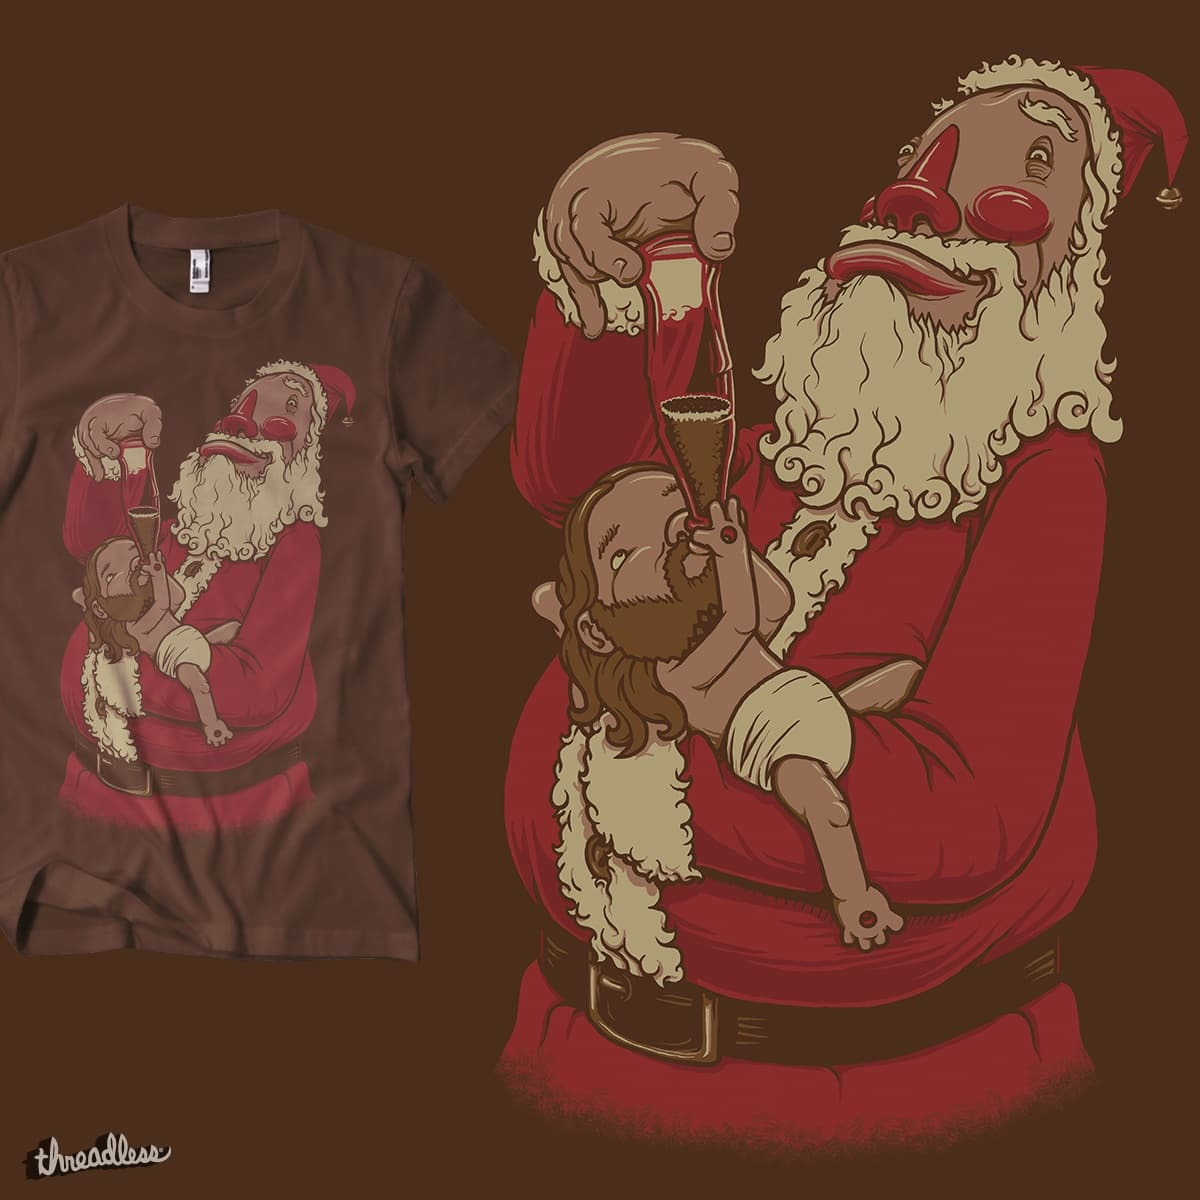 What is the meaning of Christmas? by Musarter on Threadless